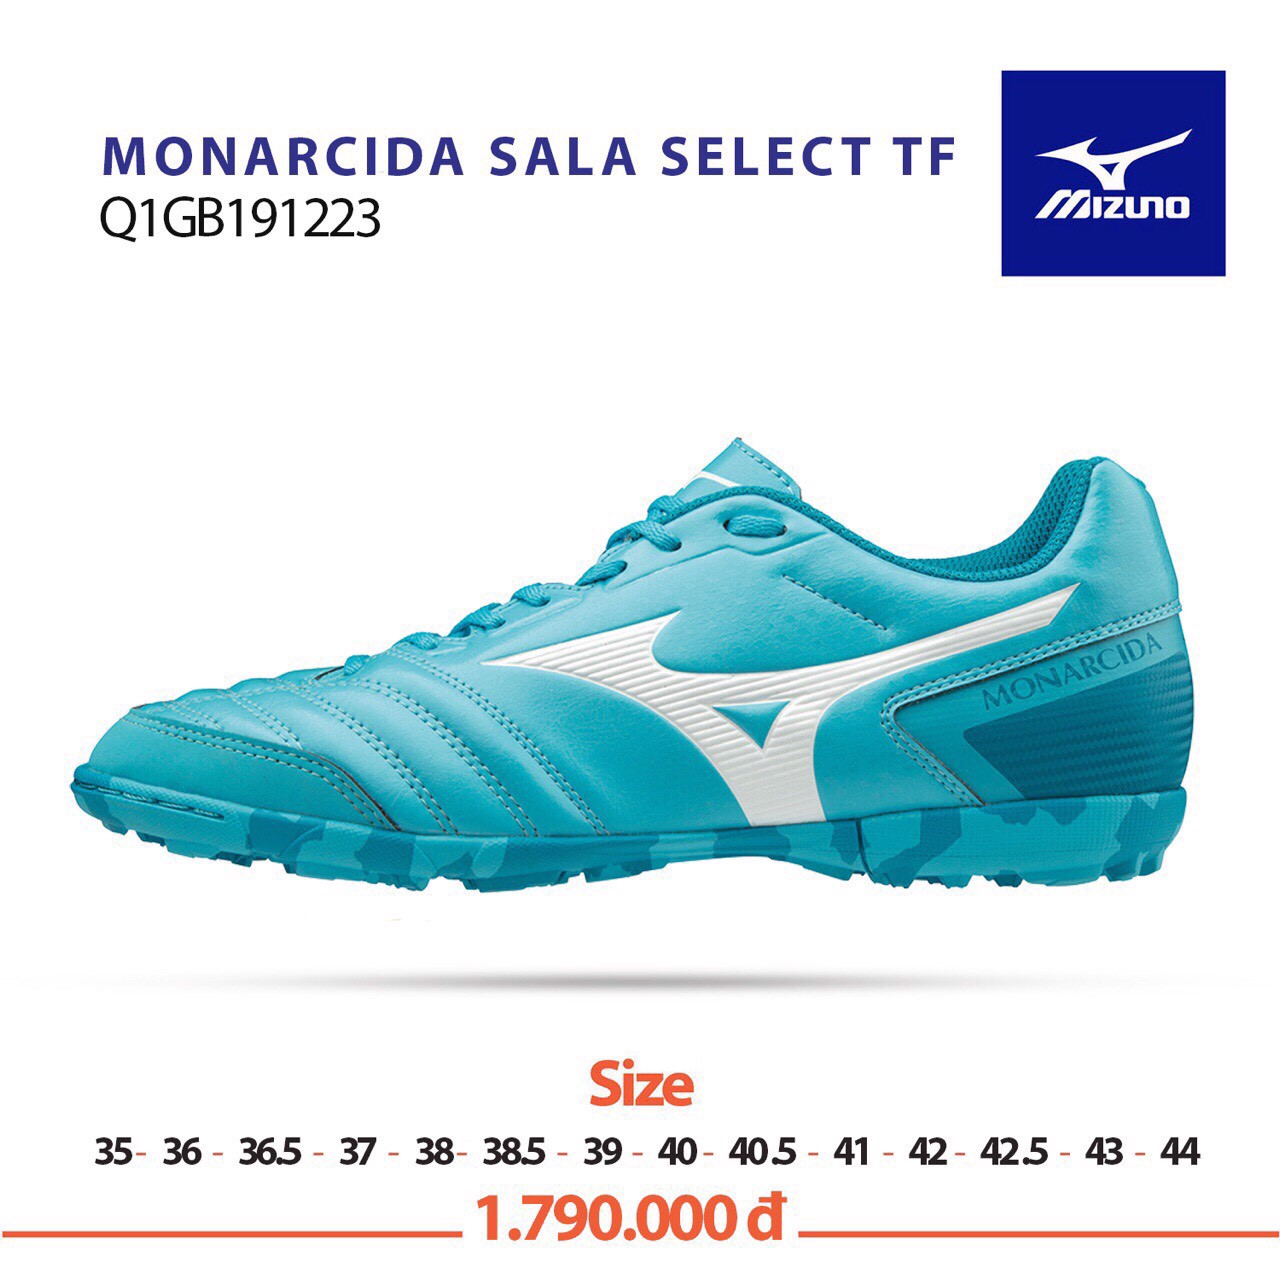 MIZUNO MONARCIDA SALA SELECT TF LIGHT BLUE/WHITE/LIGHT BLUE